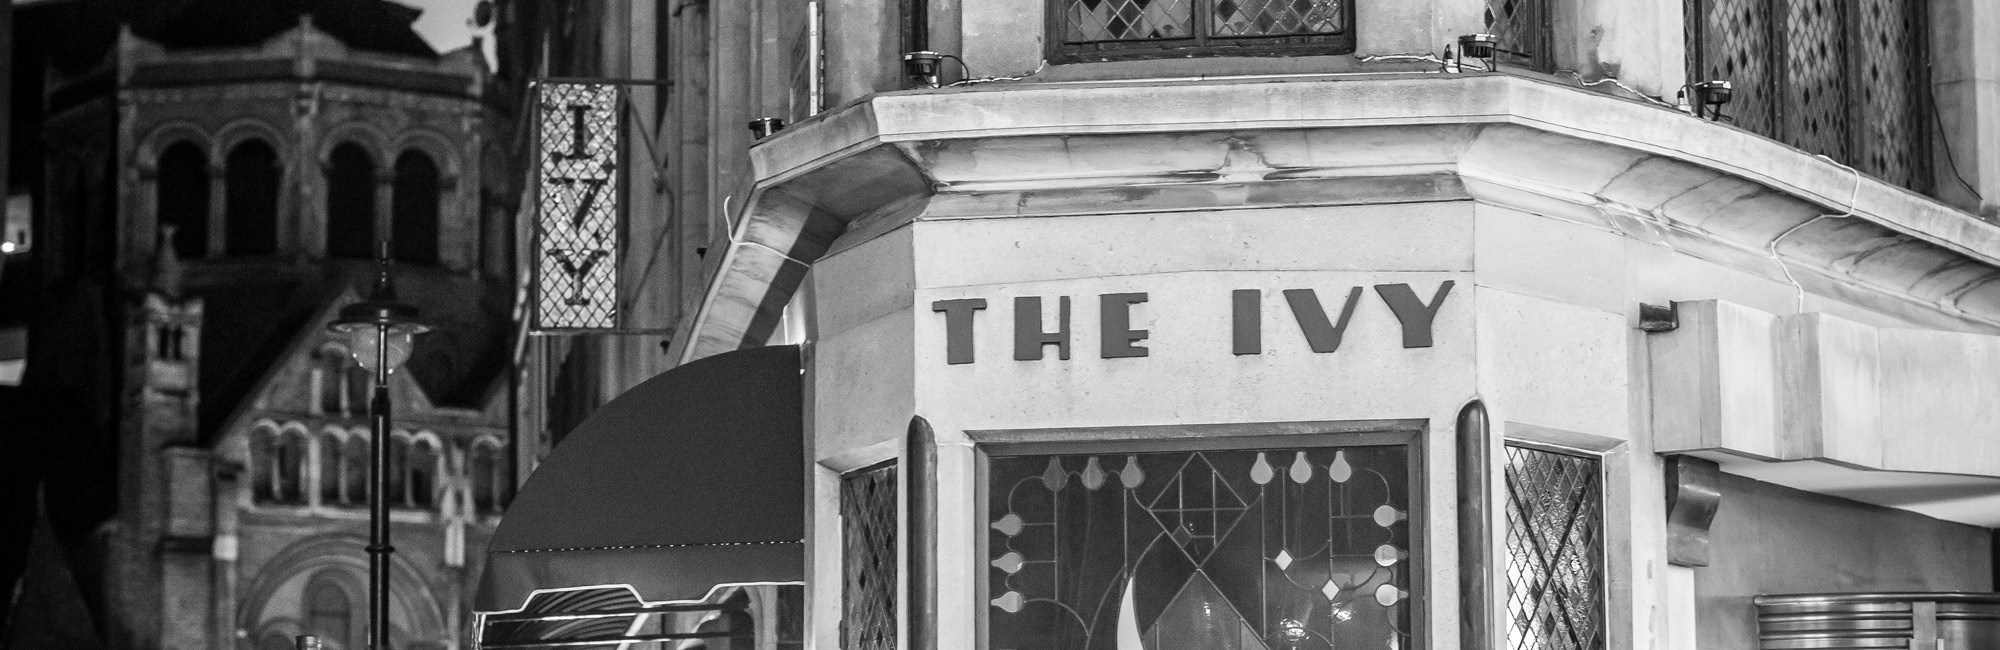 the ivy bw exterior by david griffen